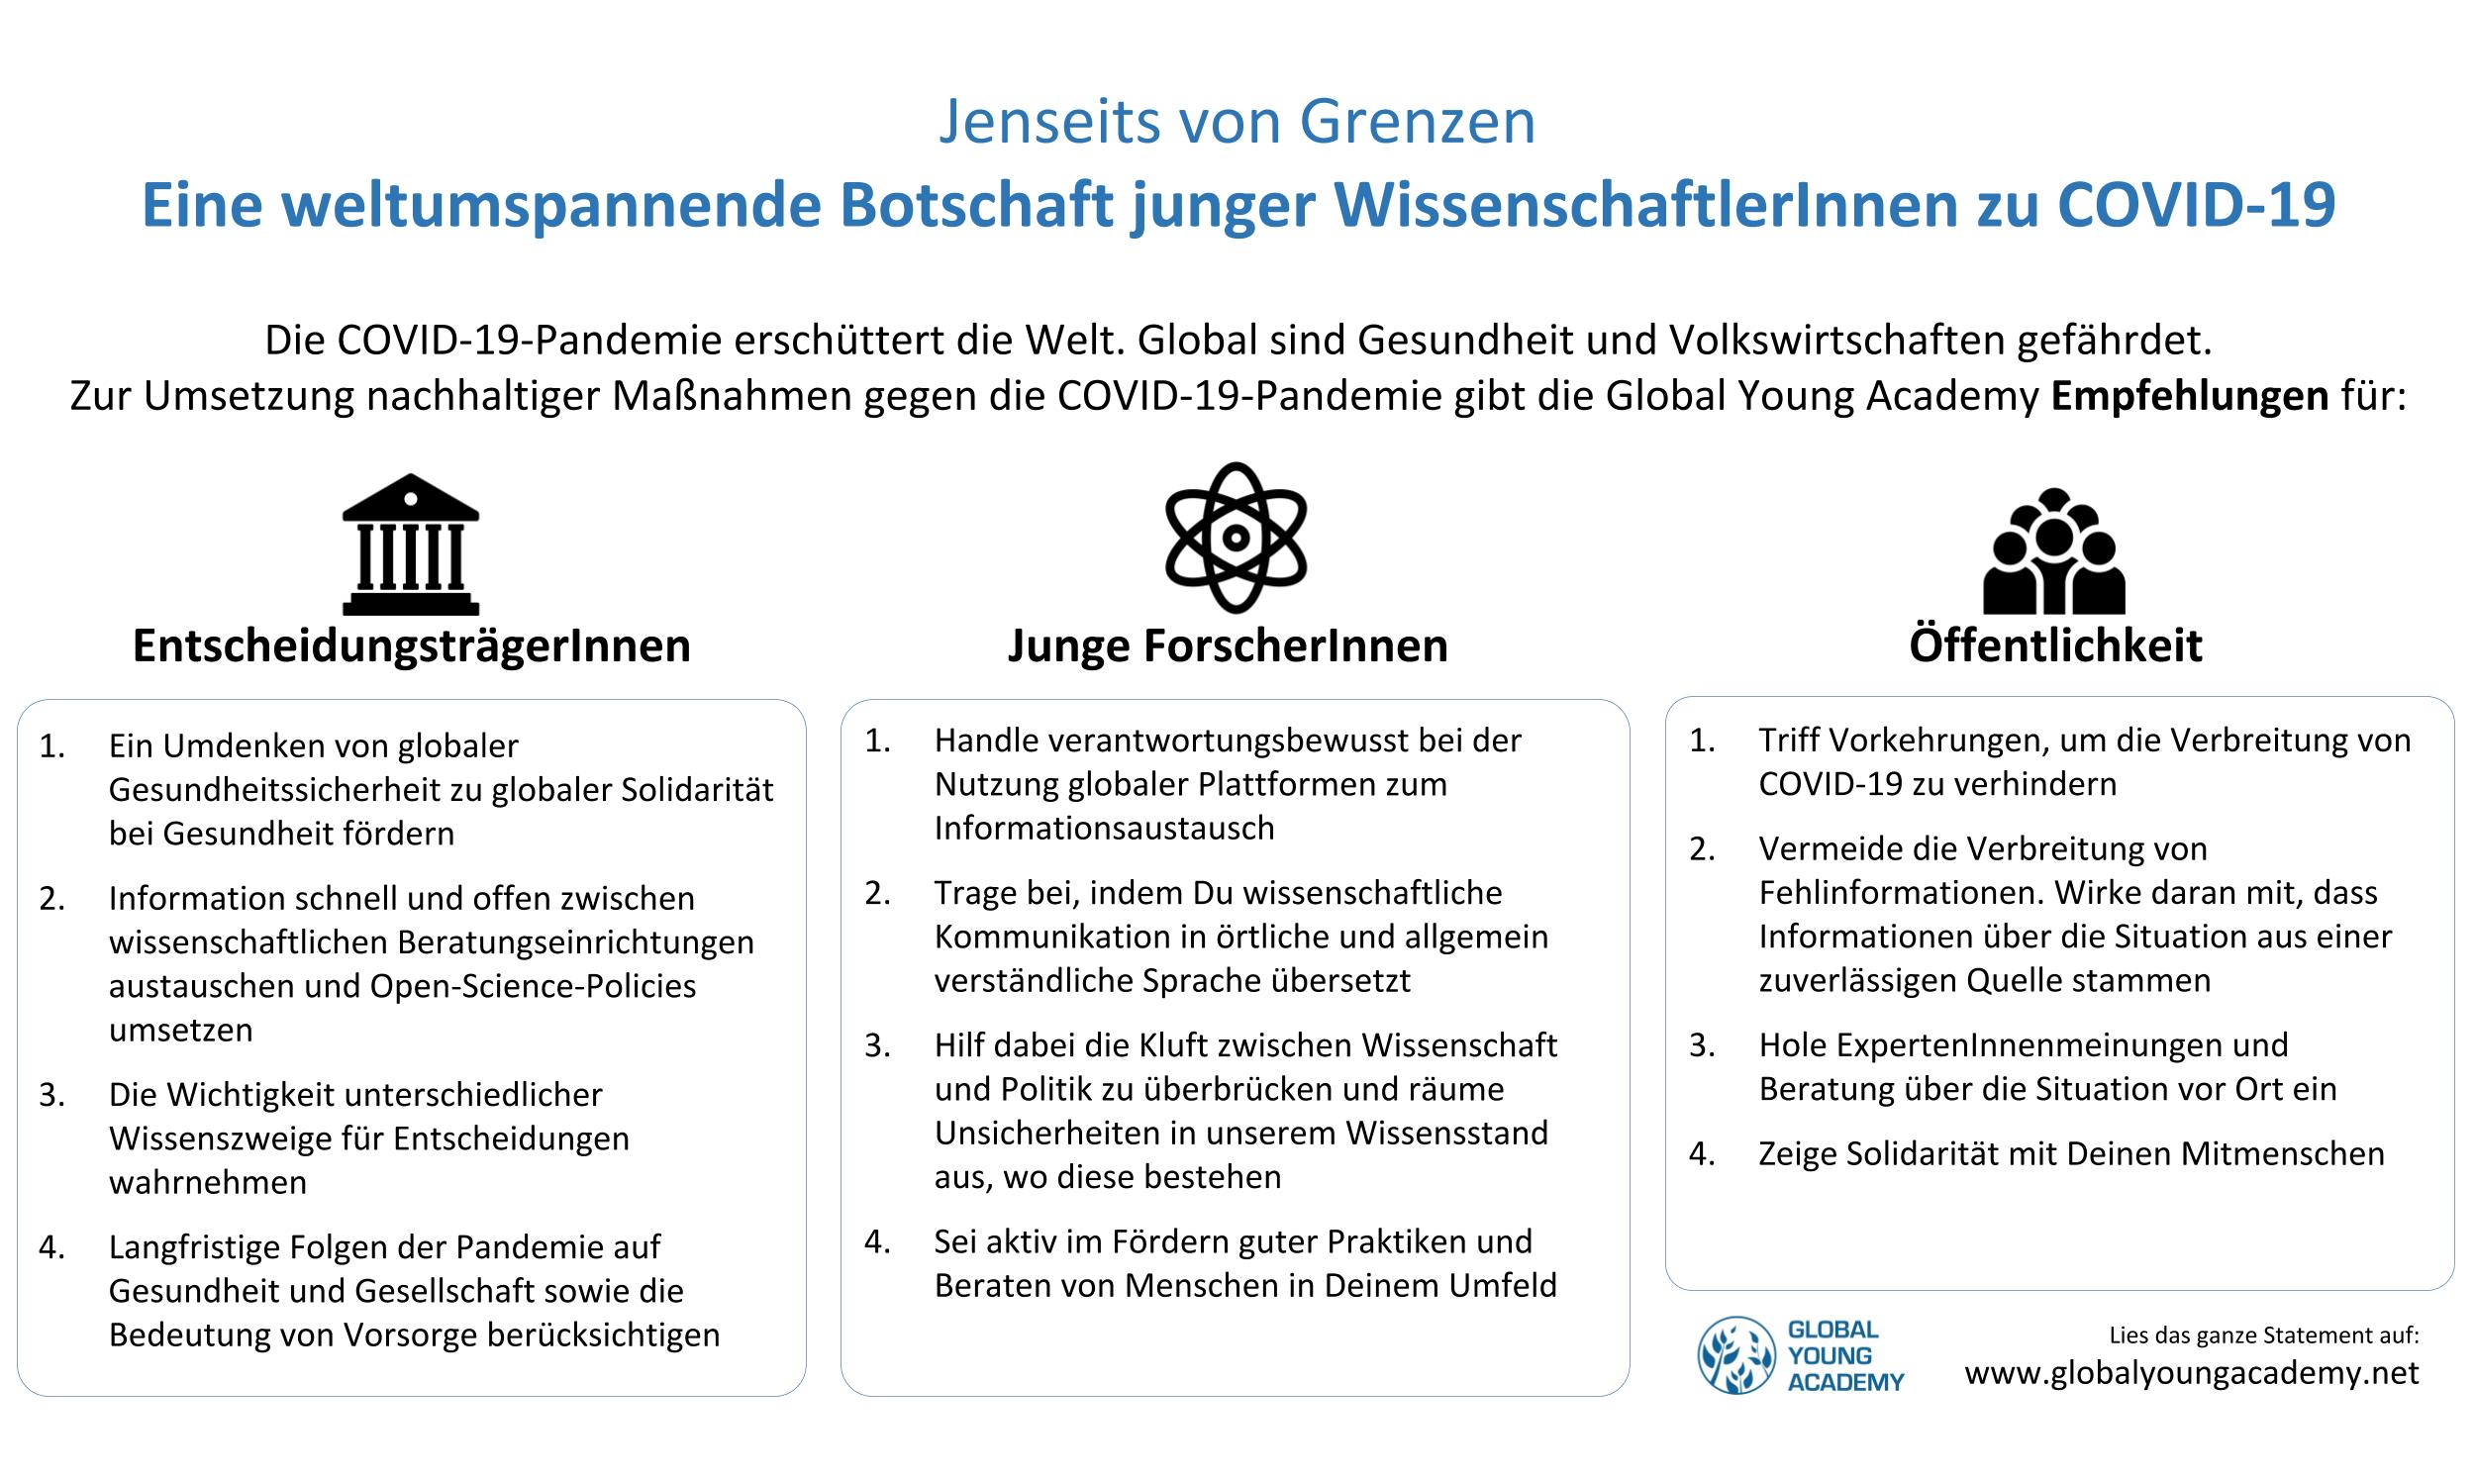 GYA COVID-19 statement infographic - German version